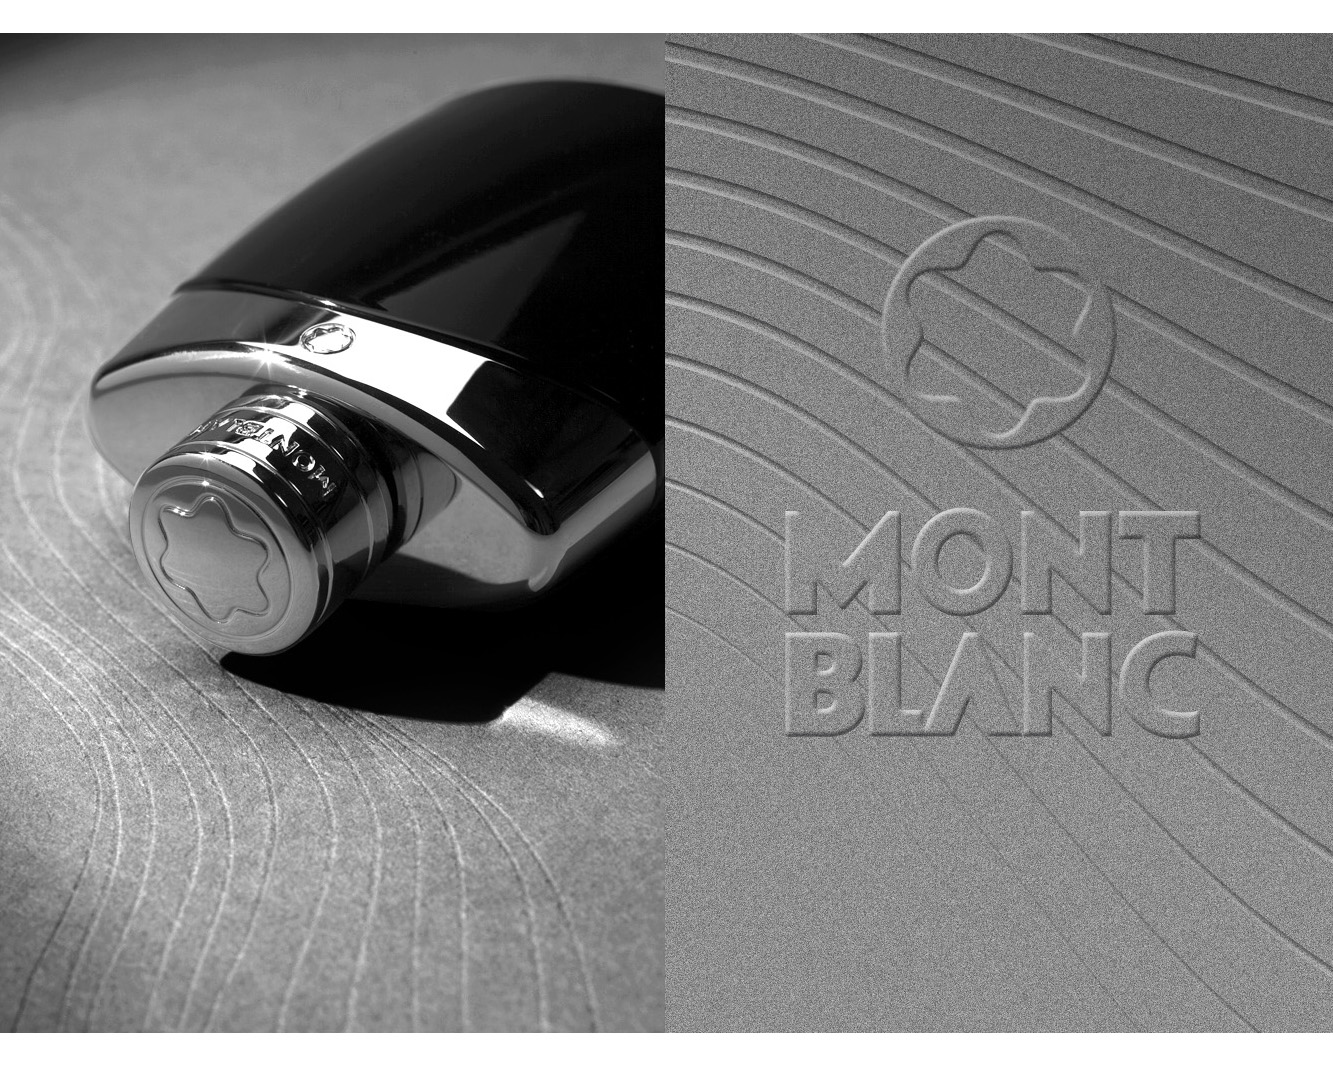 MONTBLANC concept, Omedia